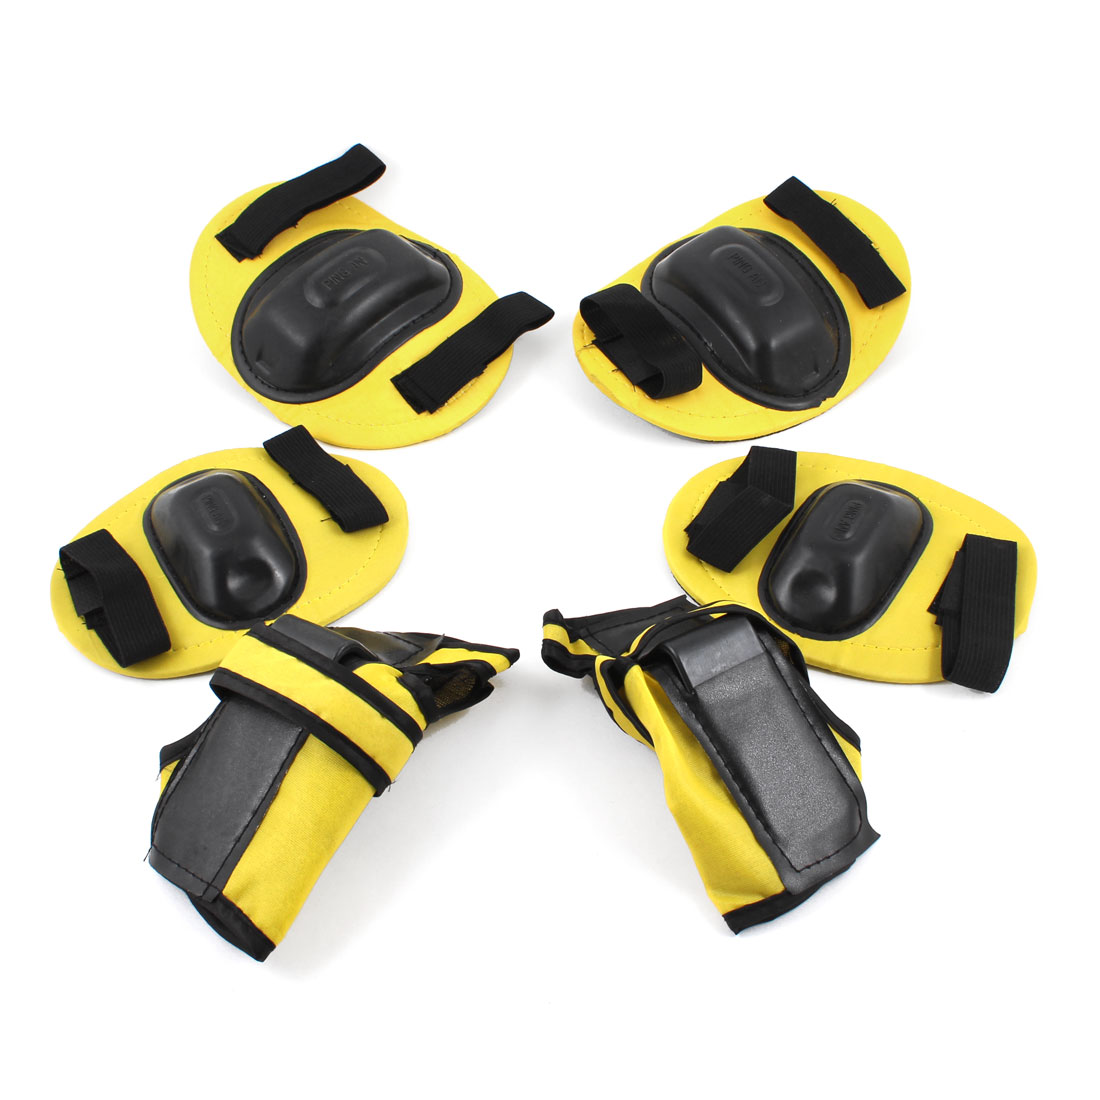 3 Pairs Yellow Black Elastic Band Wrist Palm Elbow Knee Protectors for Kids